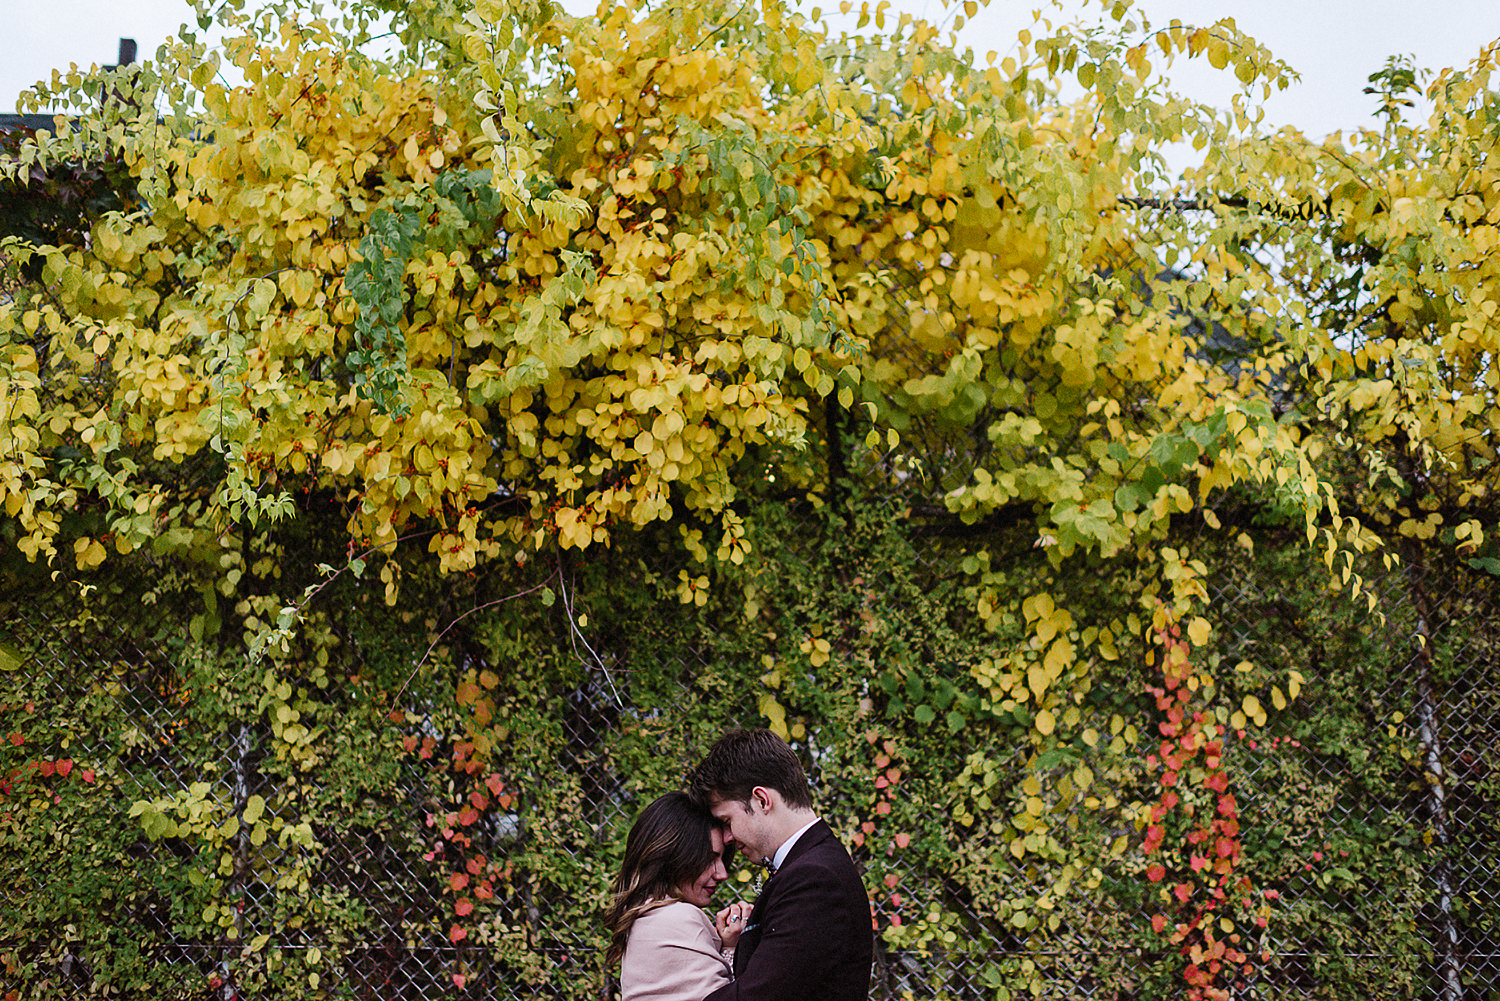 41-Best-Elopement-Photographers-Toronto-Fall-Wedding-Elopement-Modern-Vintage-Hipster-Beautiful-Groom-Red-Fall-Neon-Tree.JPG